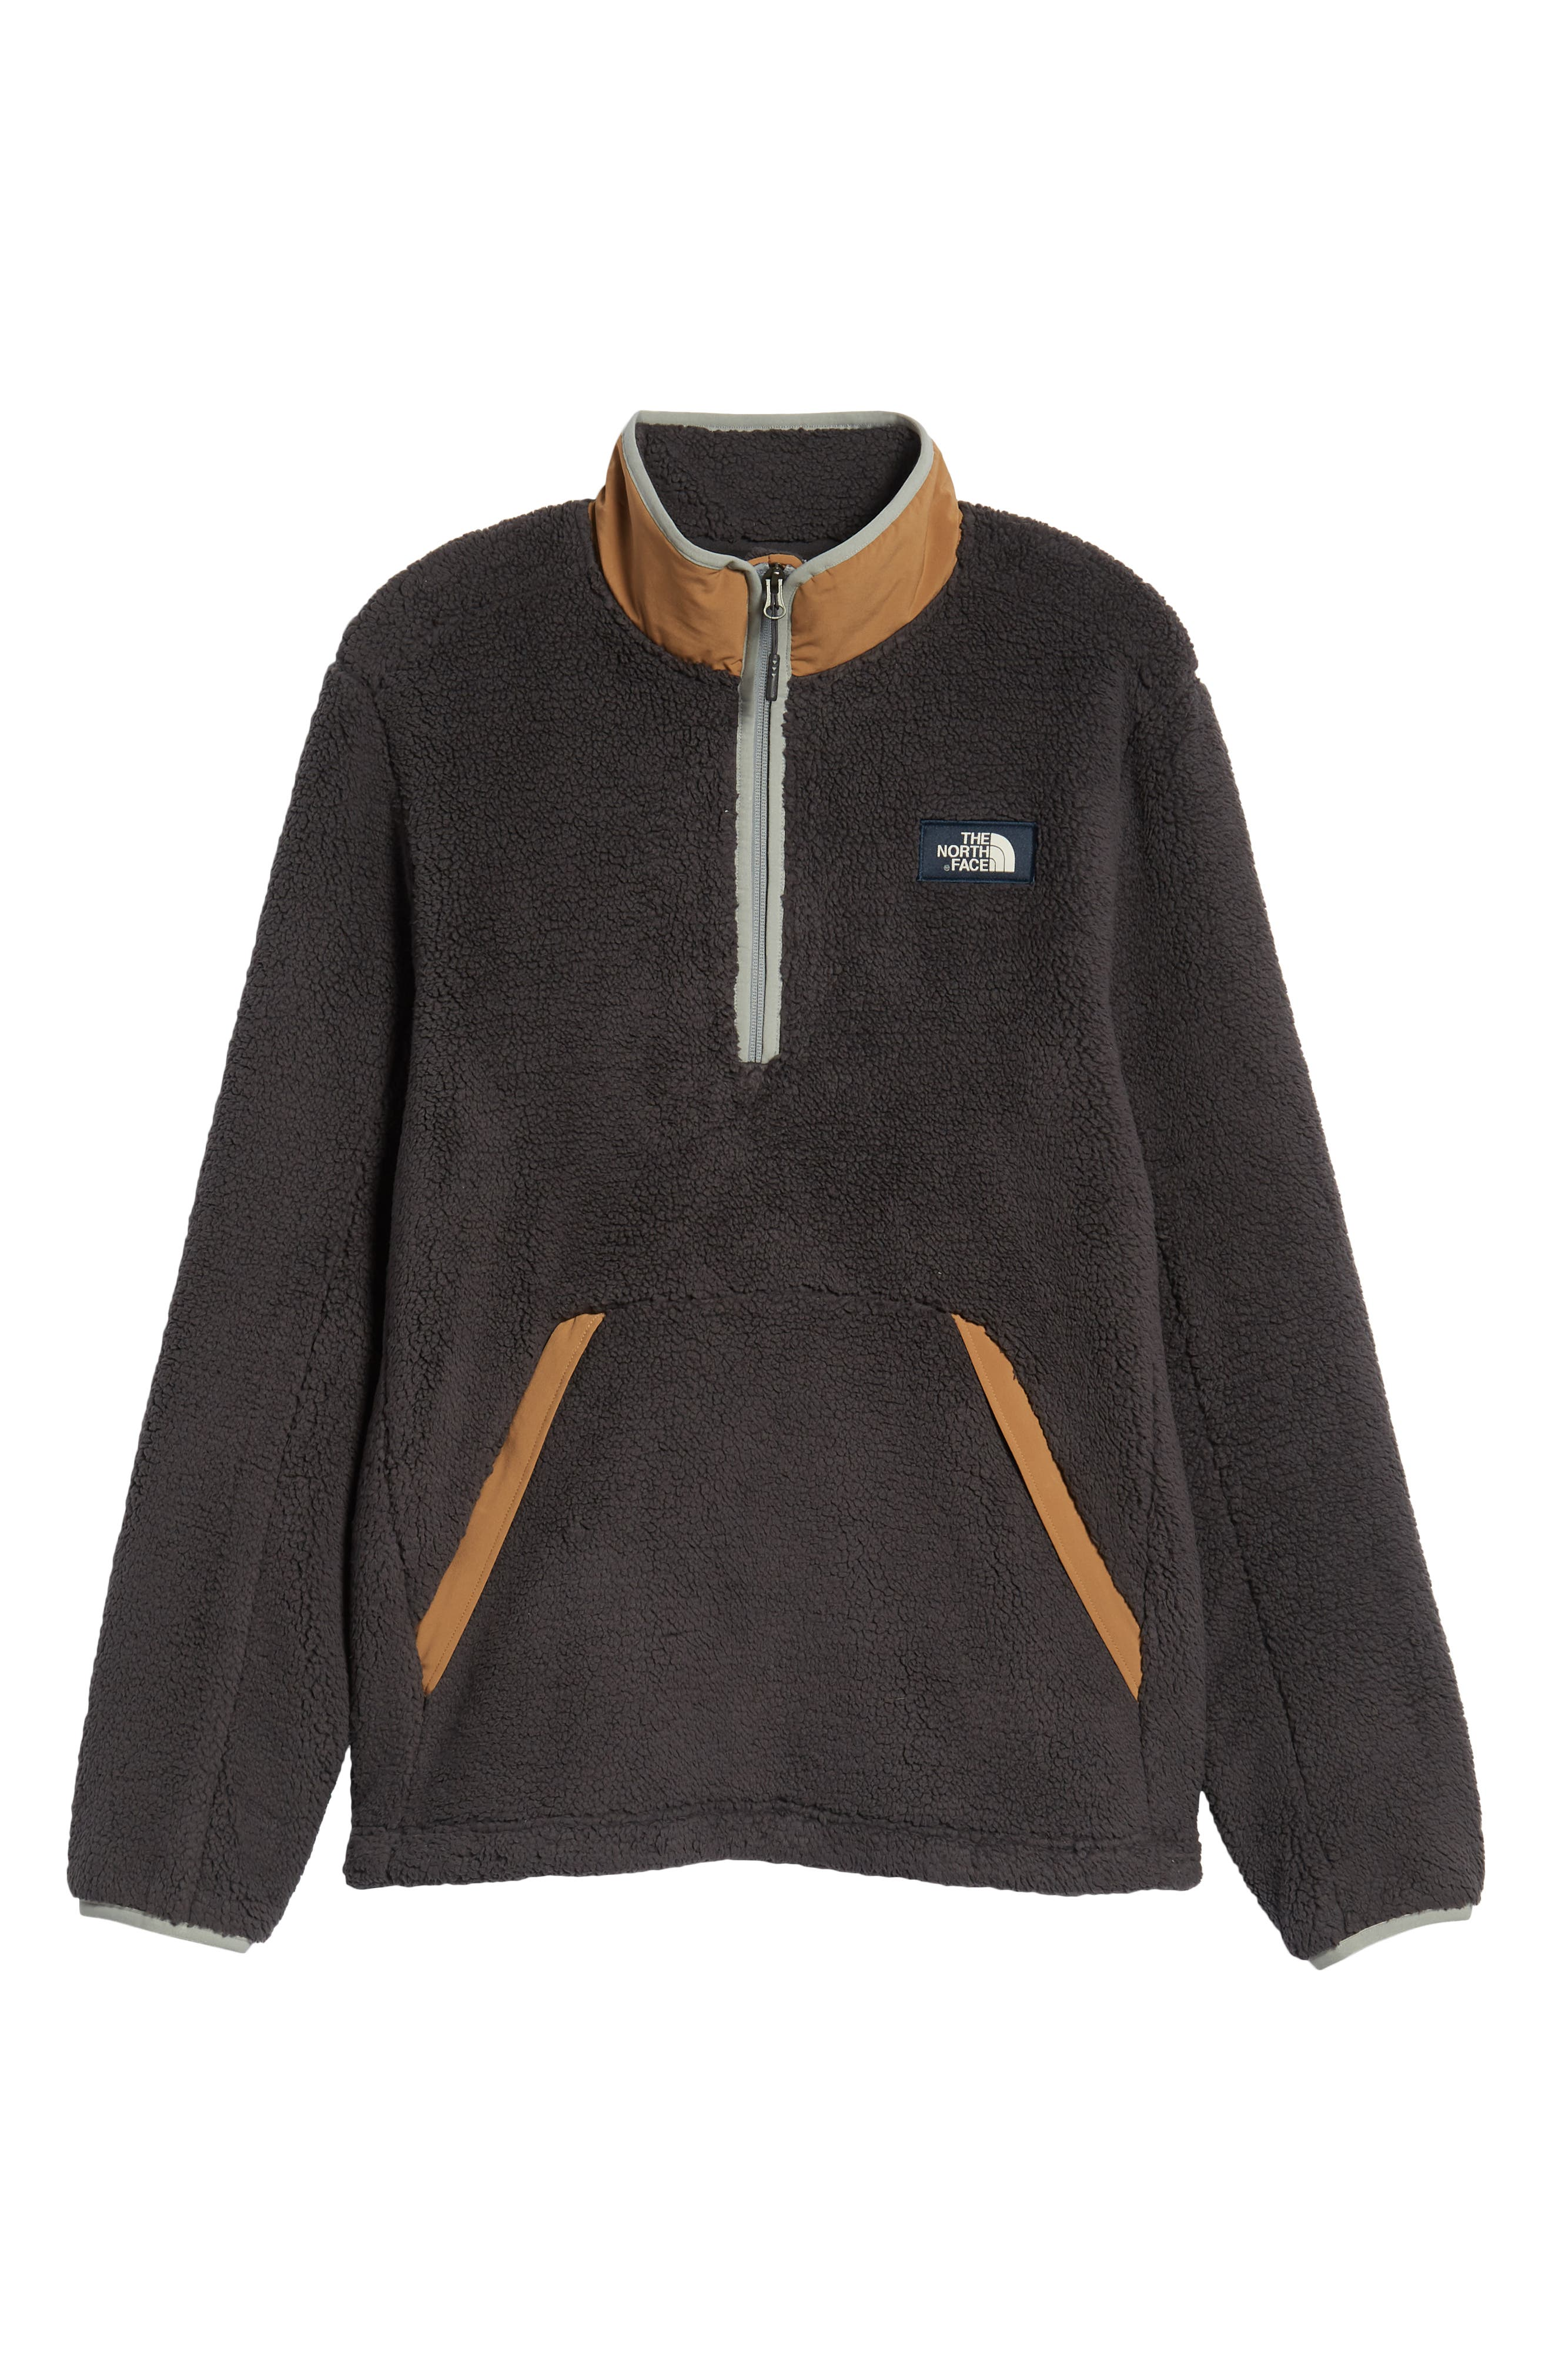 THE NORTH FACE,                             Campshire Pullover Fleece Jacket,                             Alternate thumbnail 7, color,                             001